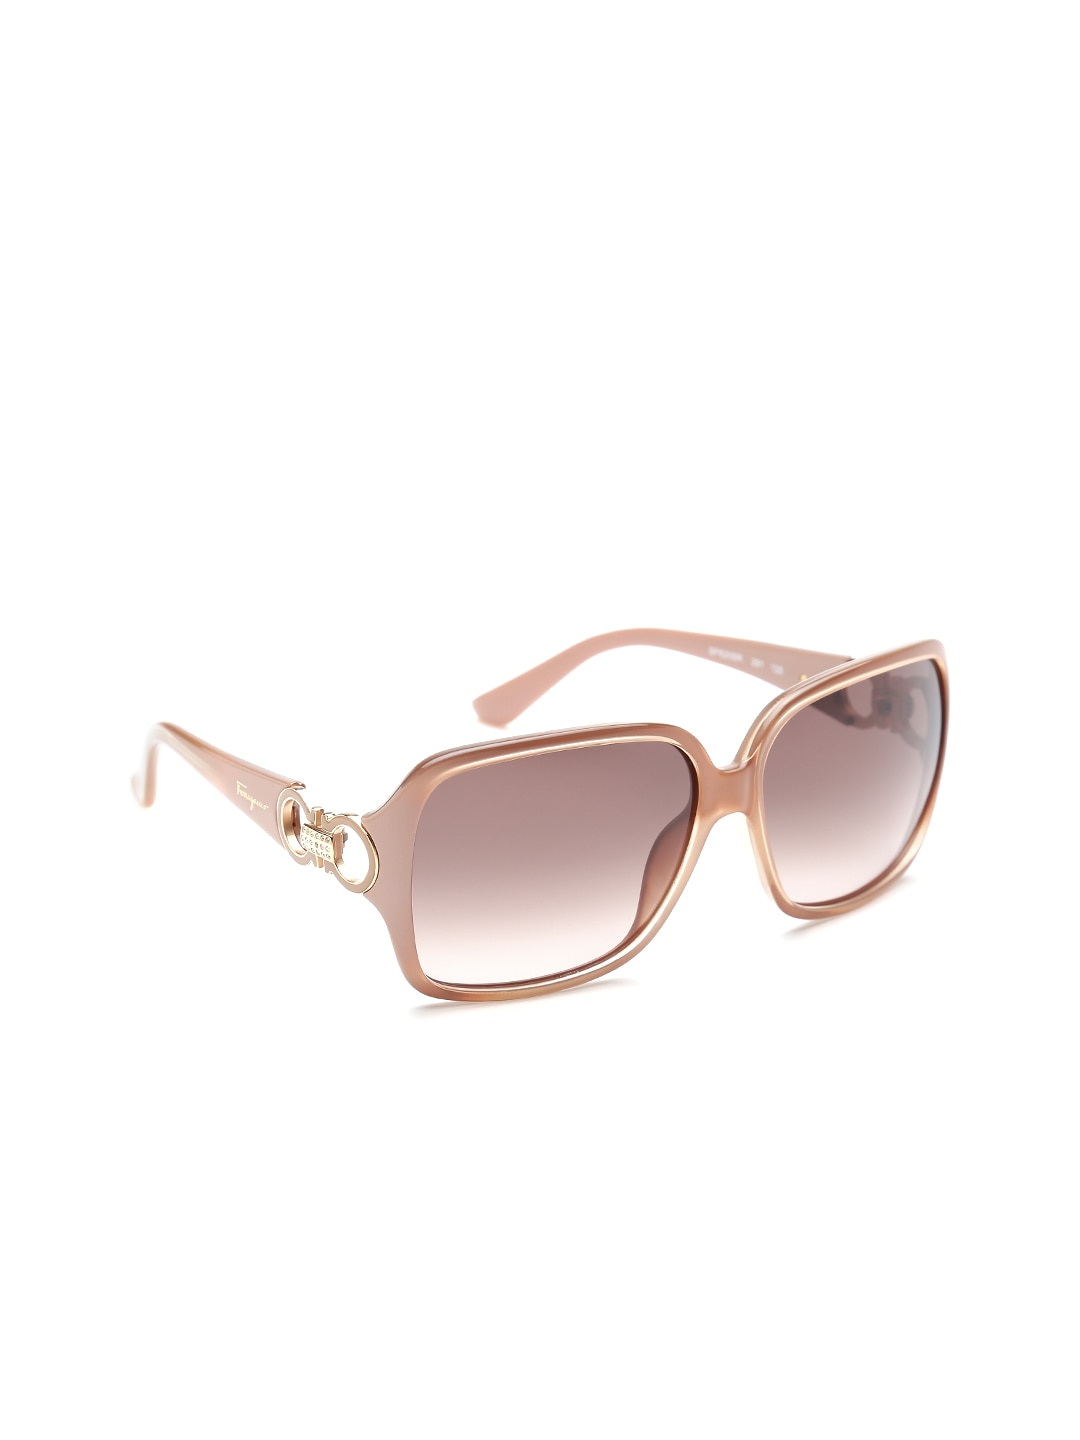 Salvatore Ferragamo Women Square Sunglasses SF620SR 291